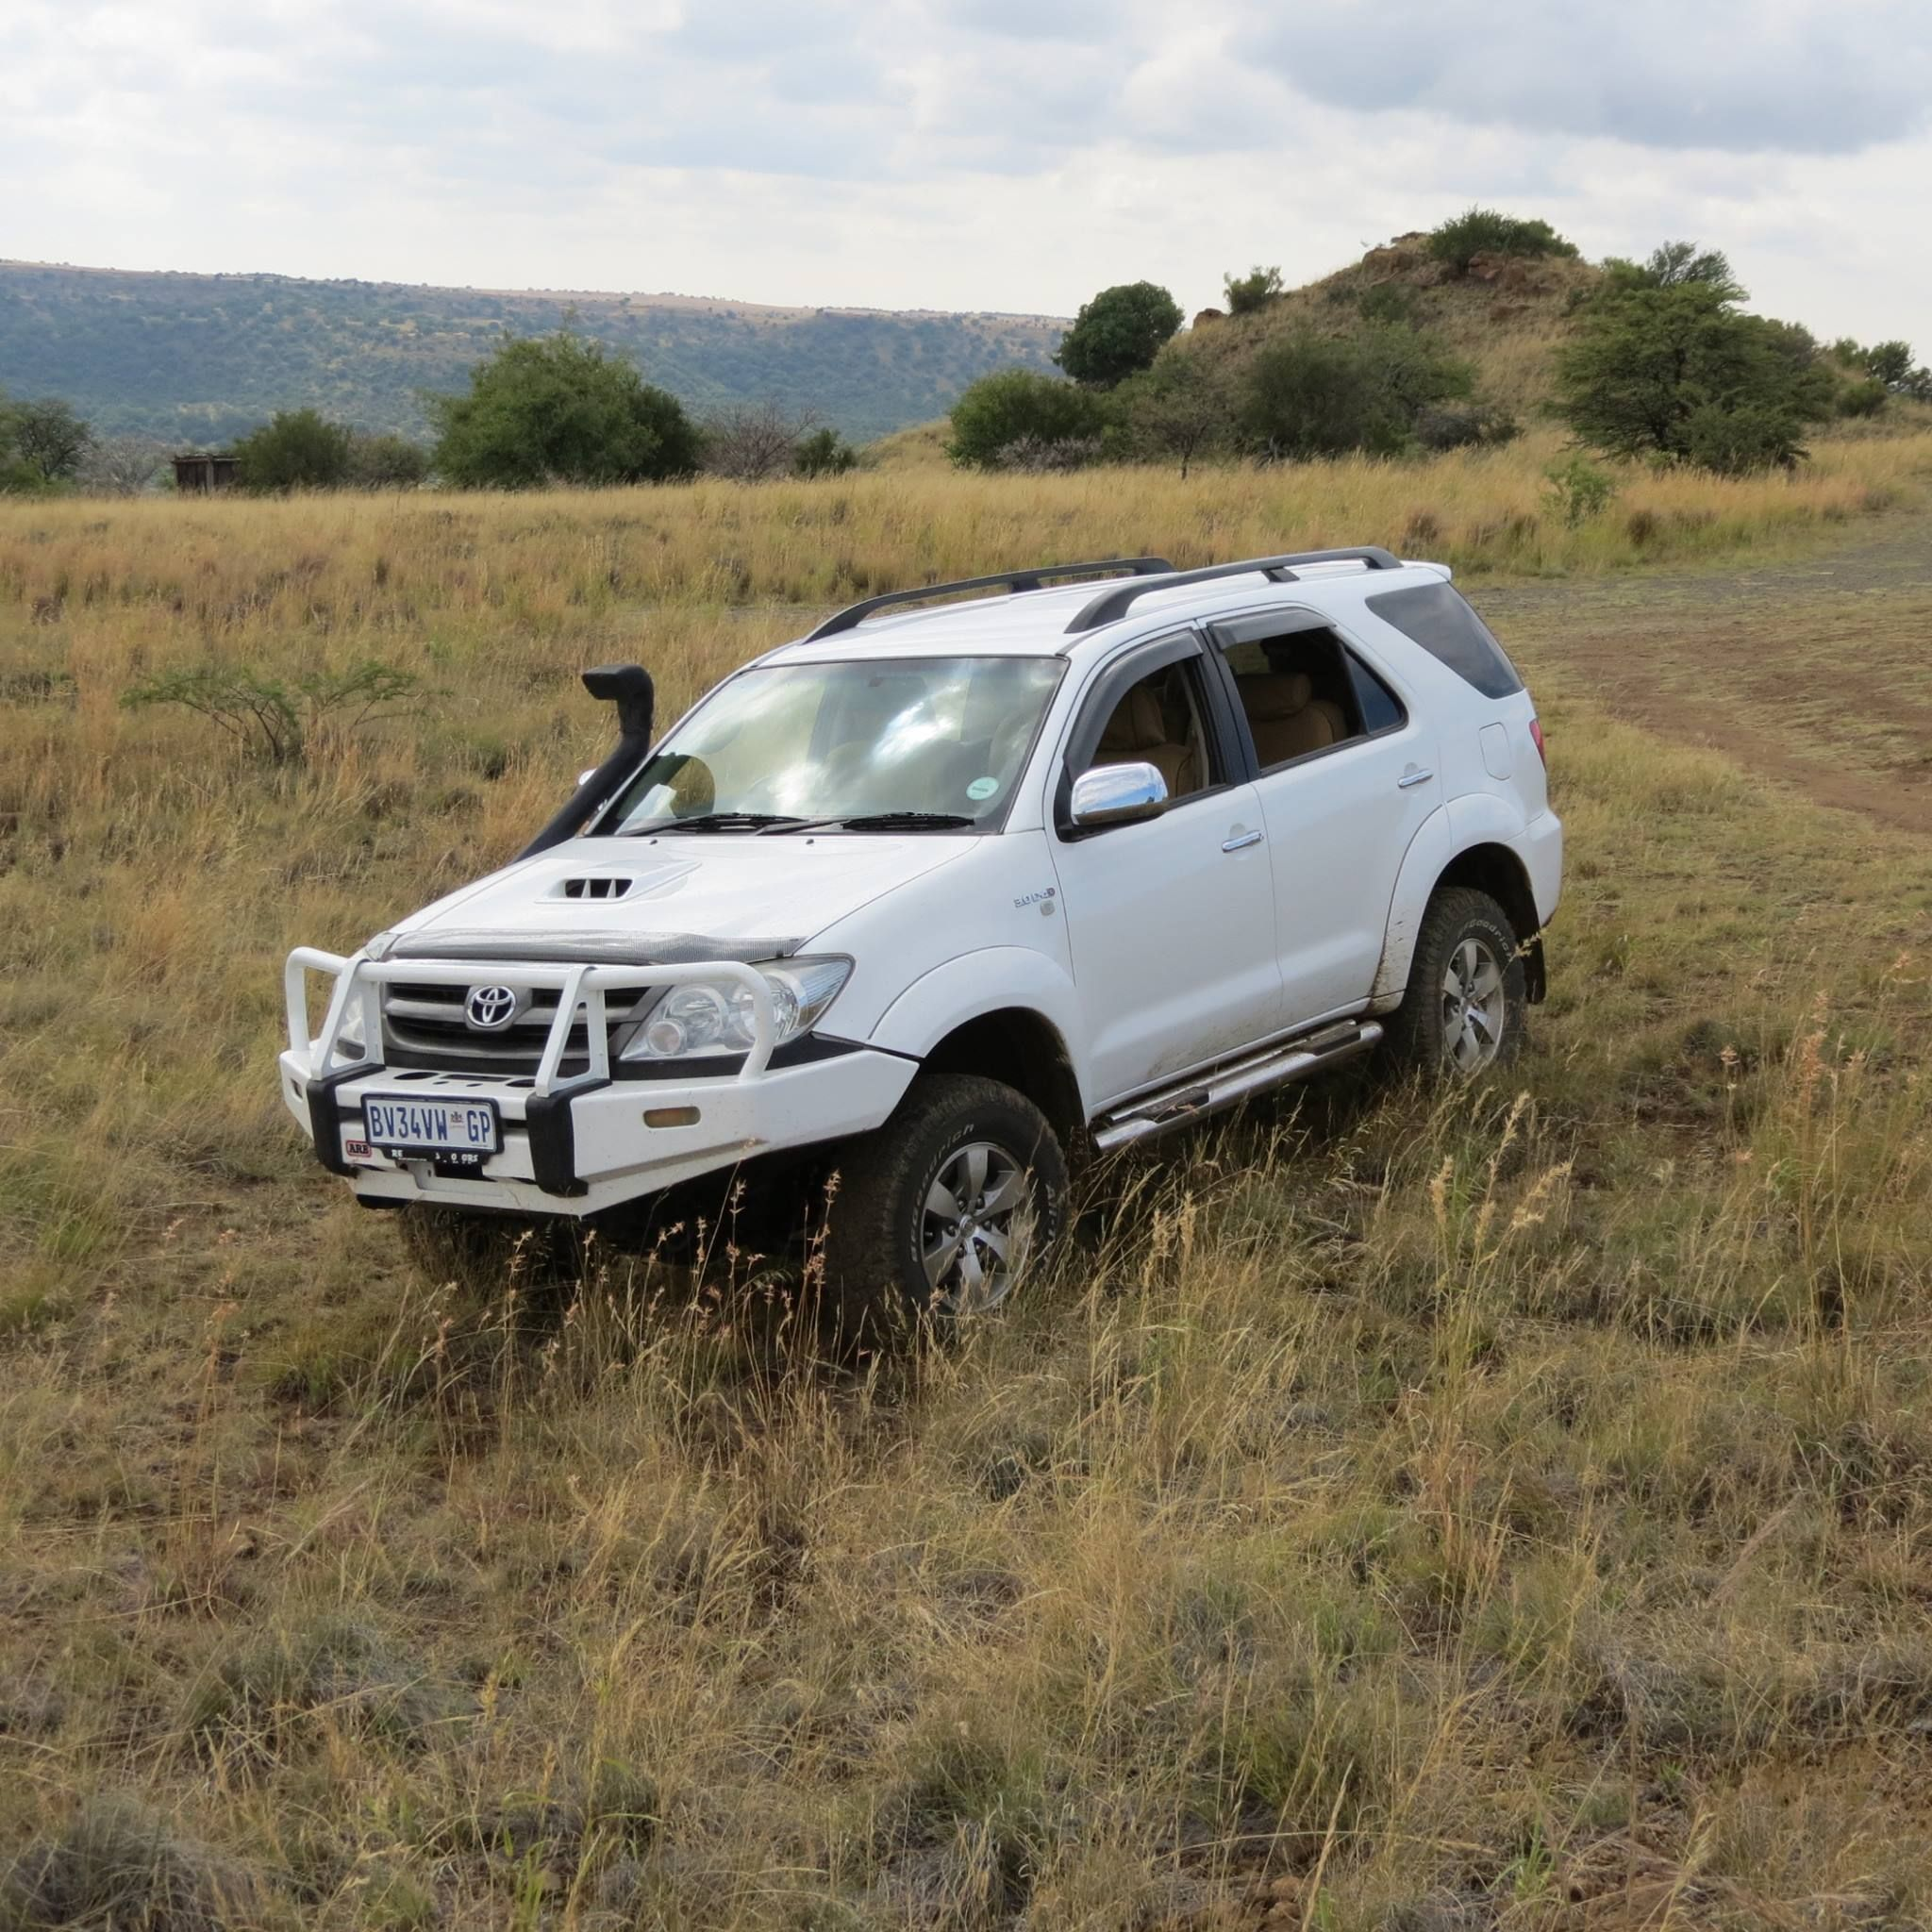 Toyota fortuner toyota offroad truck africa snorkel dirt this is